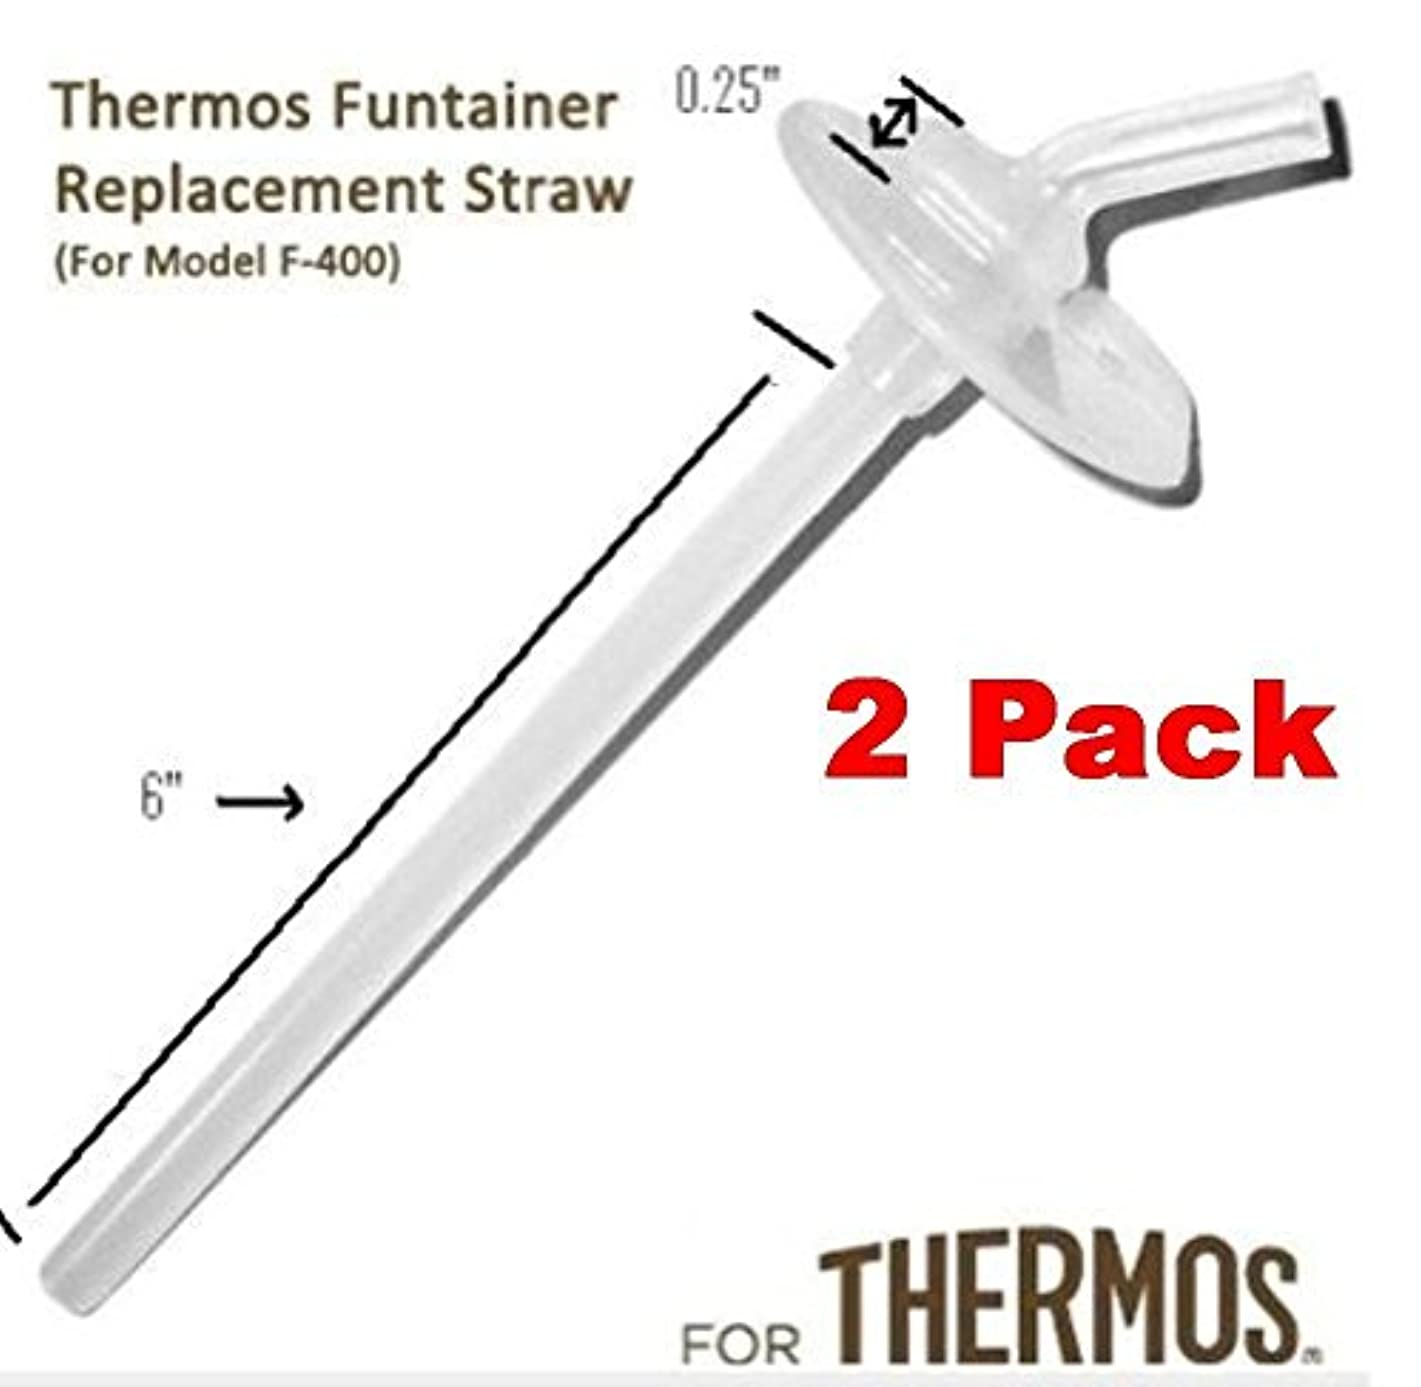 Thermos Funtainer Beverage Bottle Replacement Straw (2-PACK) For F400 Cap (Read Carefully)